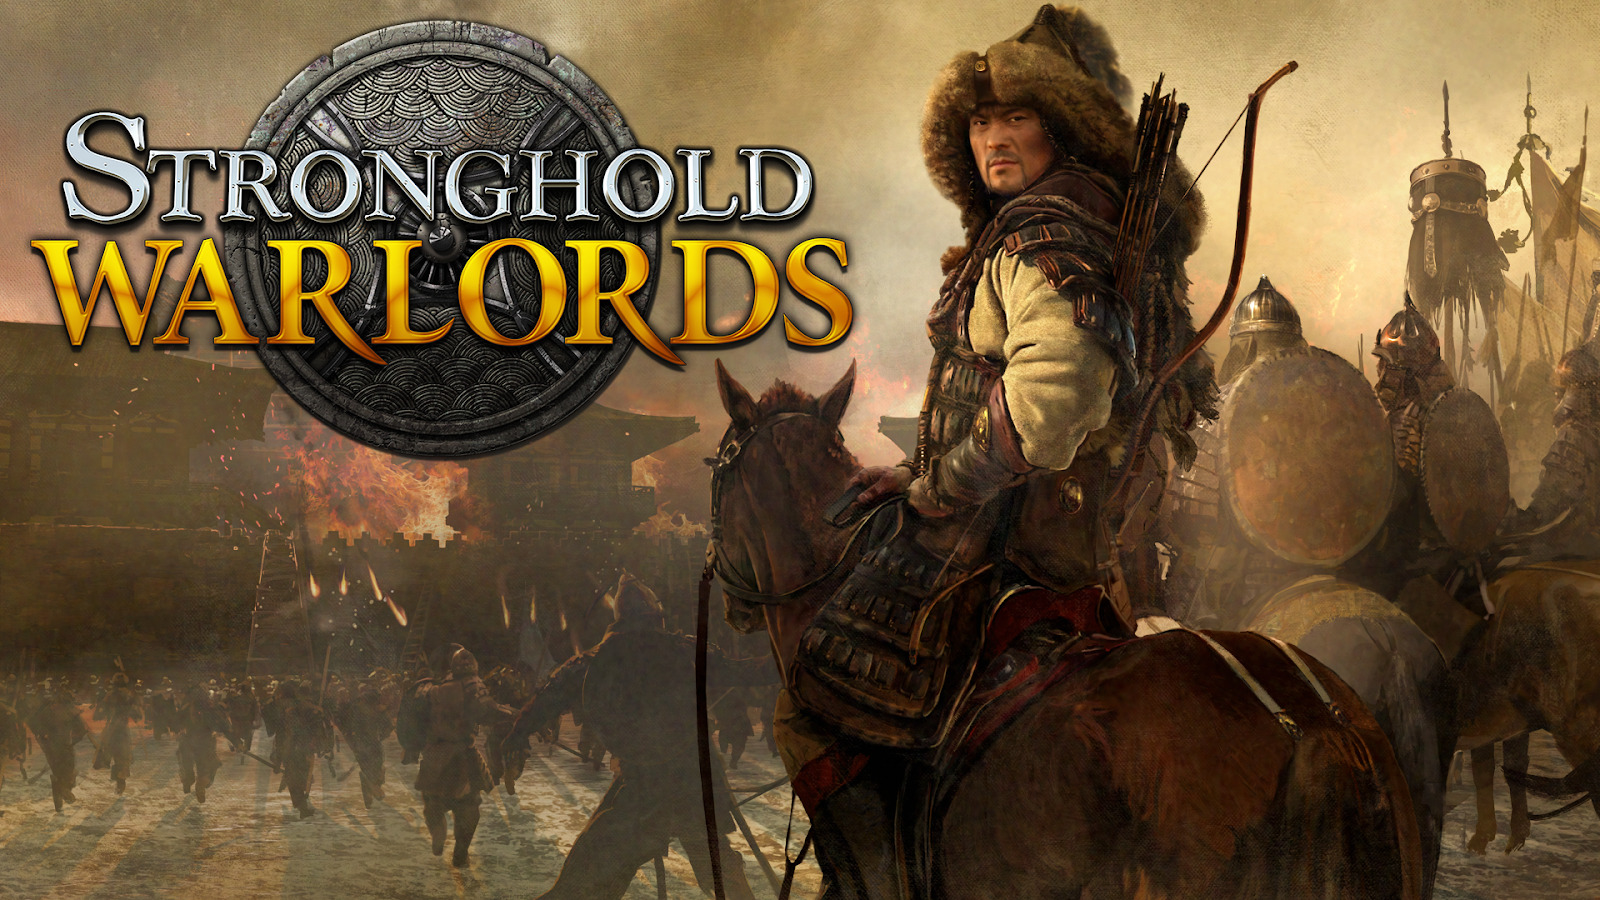 stronghold warlords stronghold warlords release date stronghold warlords download new stronghold warlords stronghold warlords download stronghold warlords beta stronghold warlords buy stronghold warlords cd key stronghold warlords free download stronghold warlords gameplay stronghold warlords of aternum stronghold warlords steam key stronghold warlords system requirements stronghold warlords trailer warlords of aternum stronghold stronghold warlord classic gameplay stronghold warlords battlerite stronghold warlords for pc stronghold warlords game download stronghold warlords game code stronghold warlords review stronghold warlords rts games stronghold warlords surviving the aftermath warlords of aternum strongholds stronghold warlords gamekey